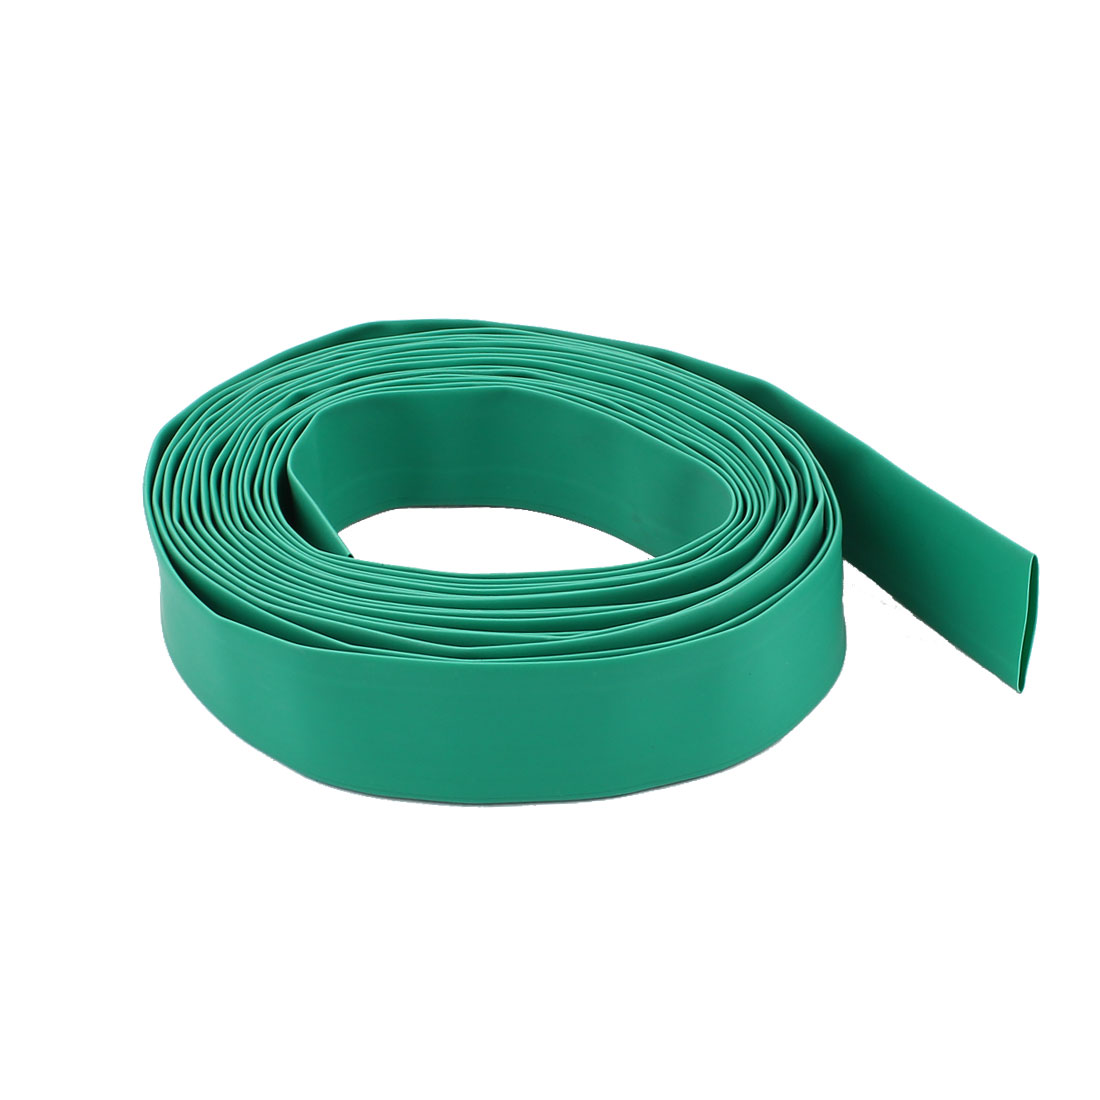 Green 16mm Dia 2:1 Polyolefin Heat Shrink Tubing Shrinkable Tube 5M 16Ft